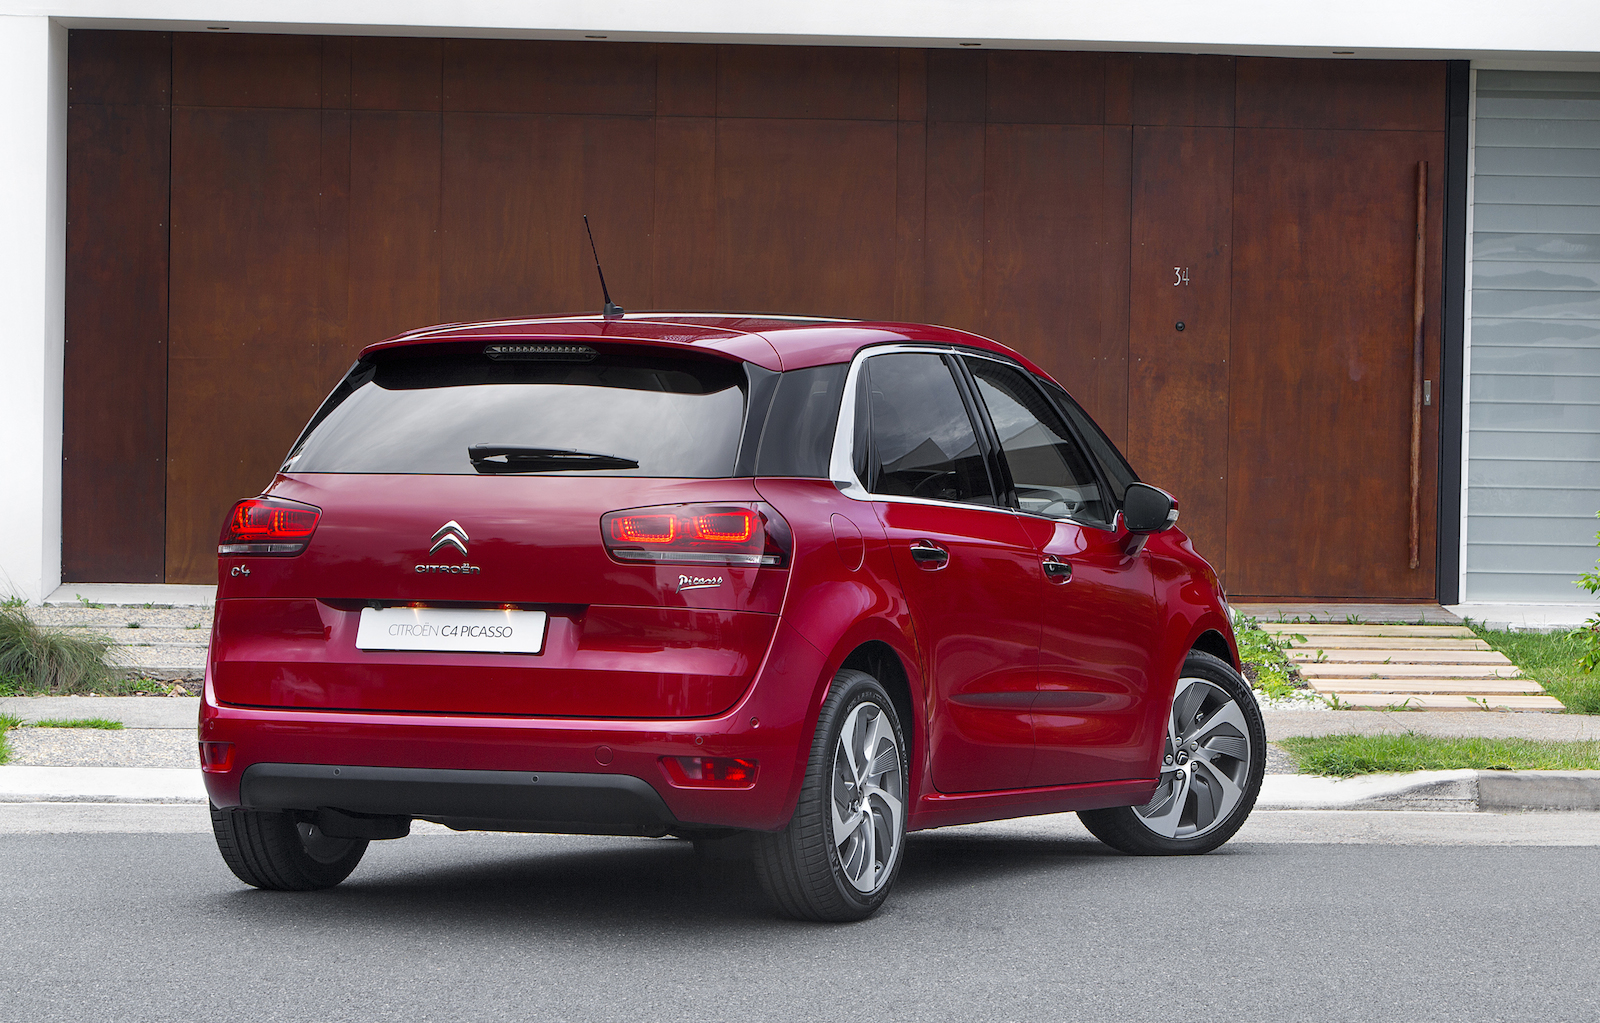 2015 citroen c4 picasso review photos caradvice. Black Bedroom Furniture Sets. Home Design Ideas